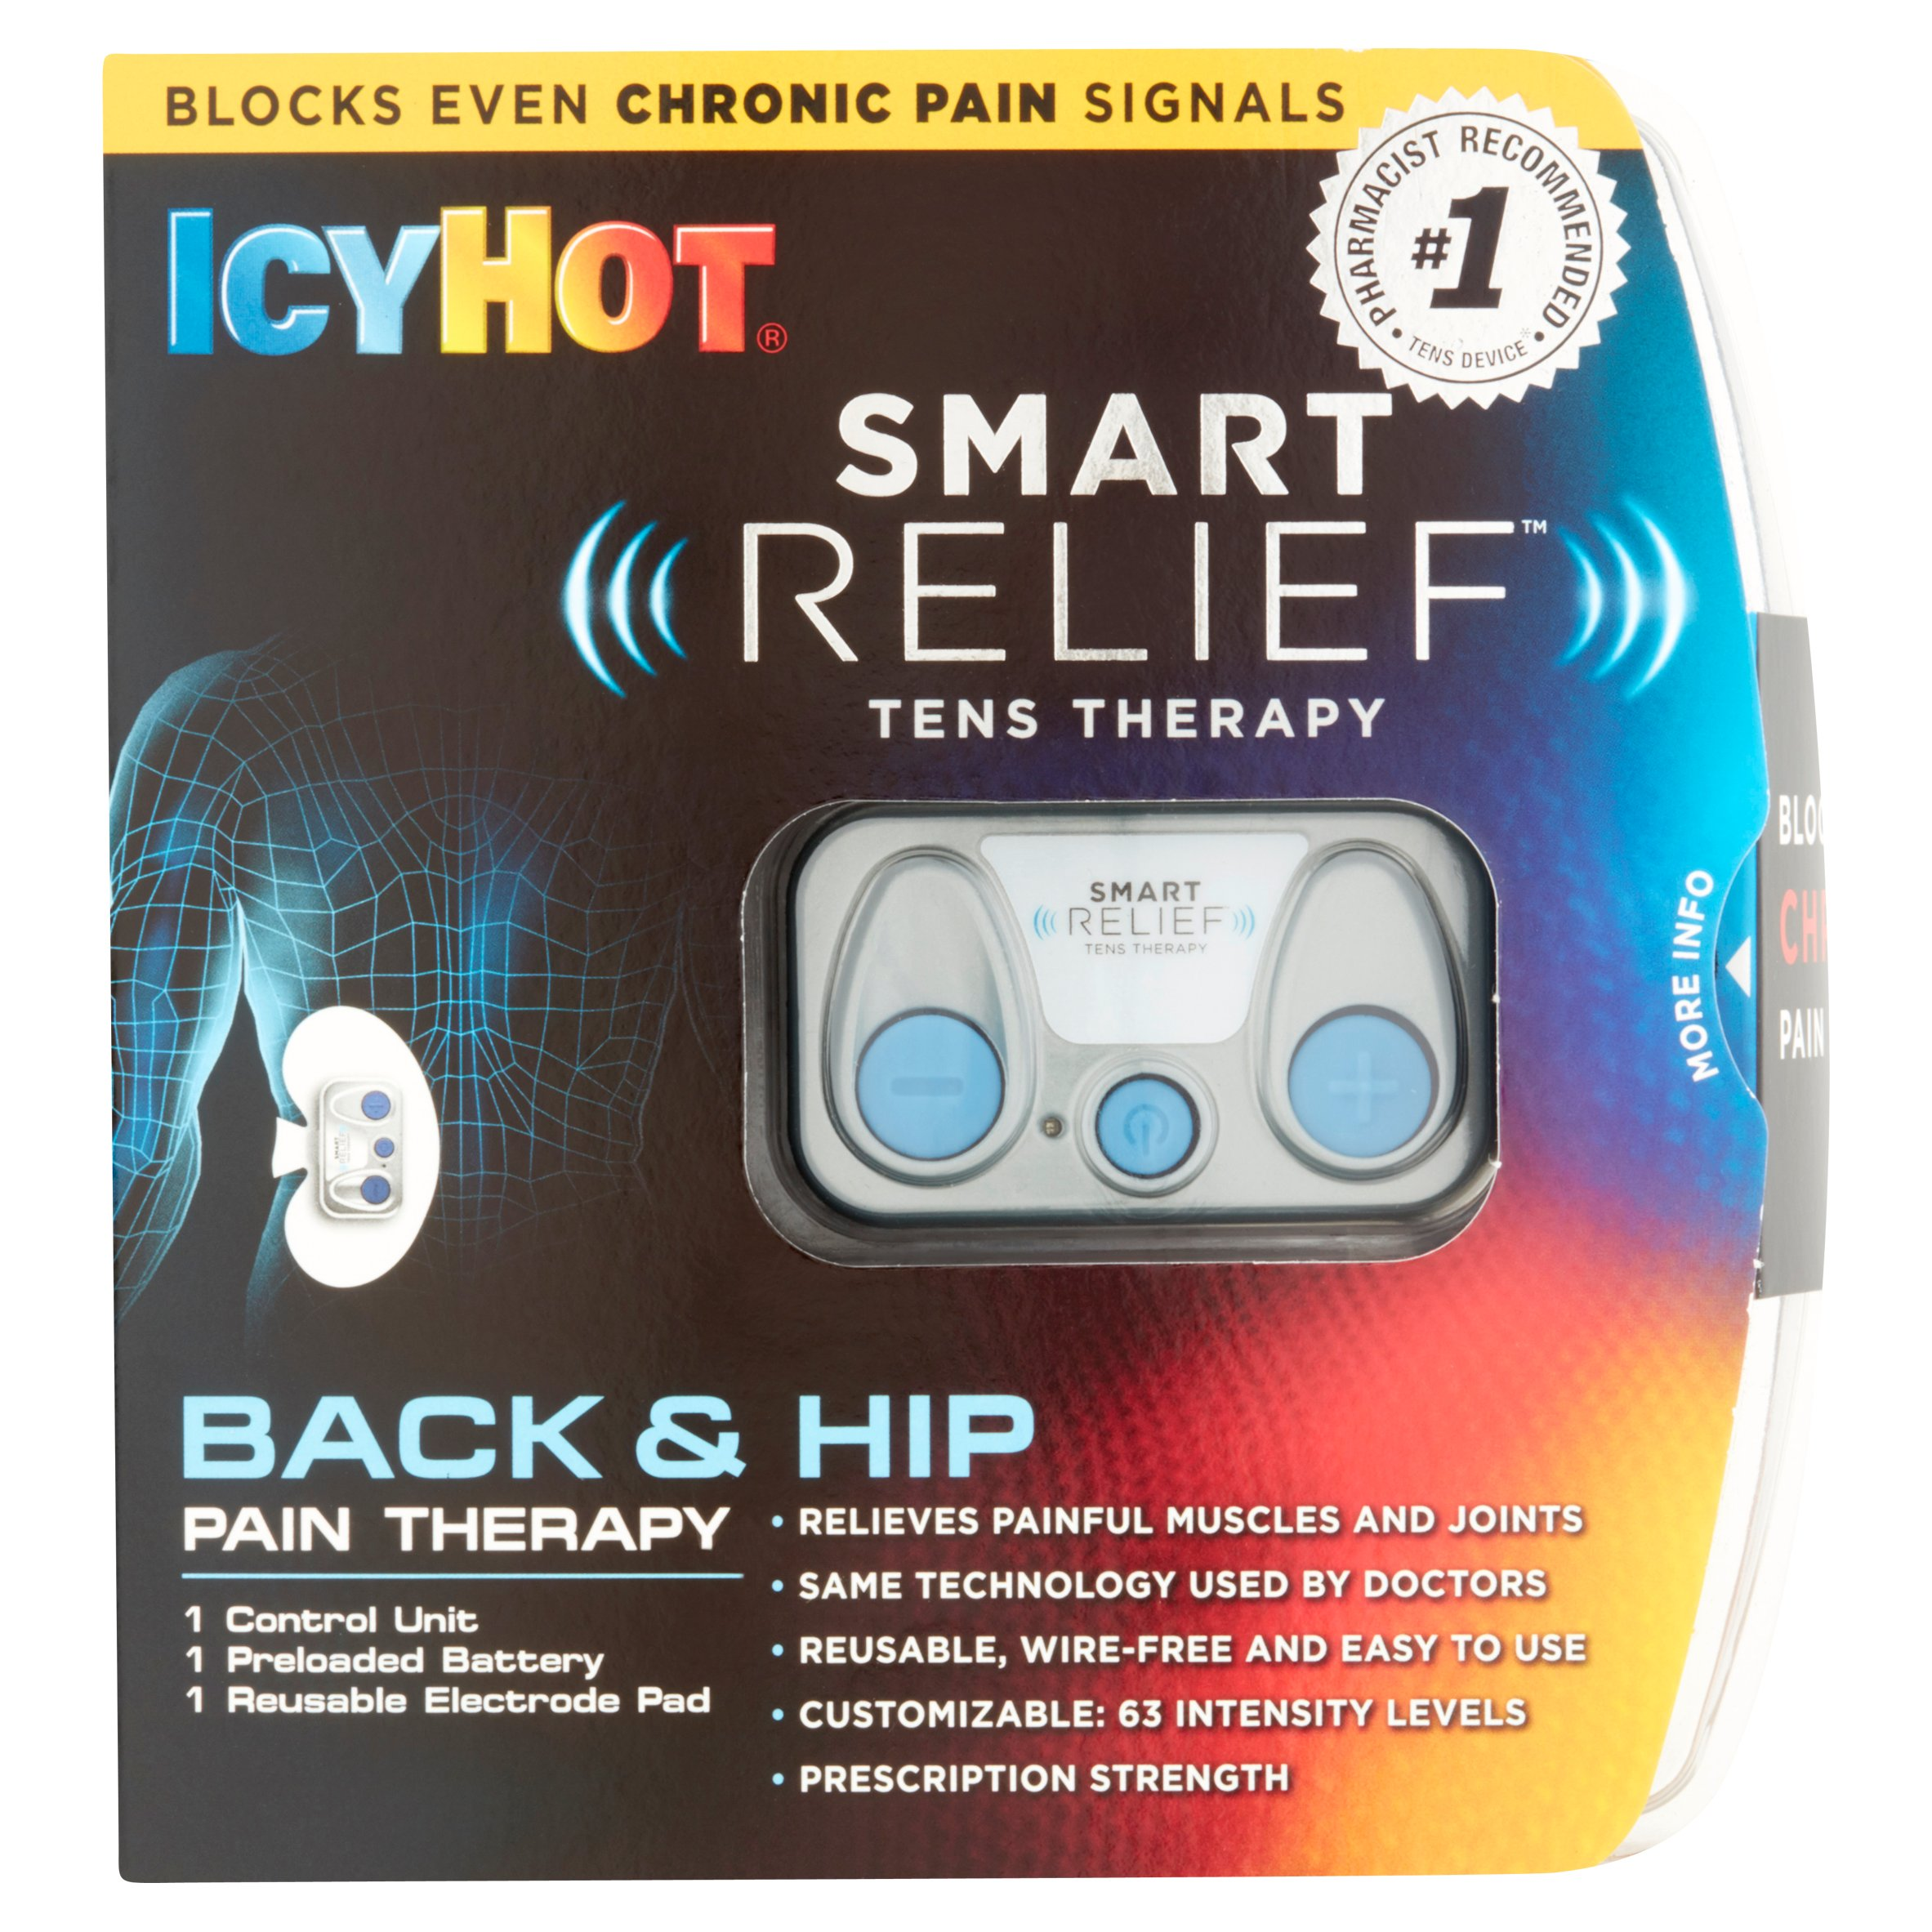 Icy Hot Smart Relief Tens Therapy for Back and Hip Starter Pack